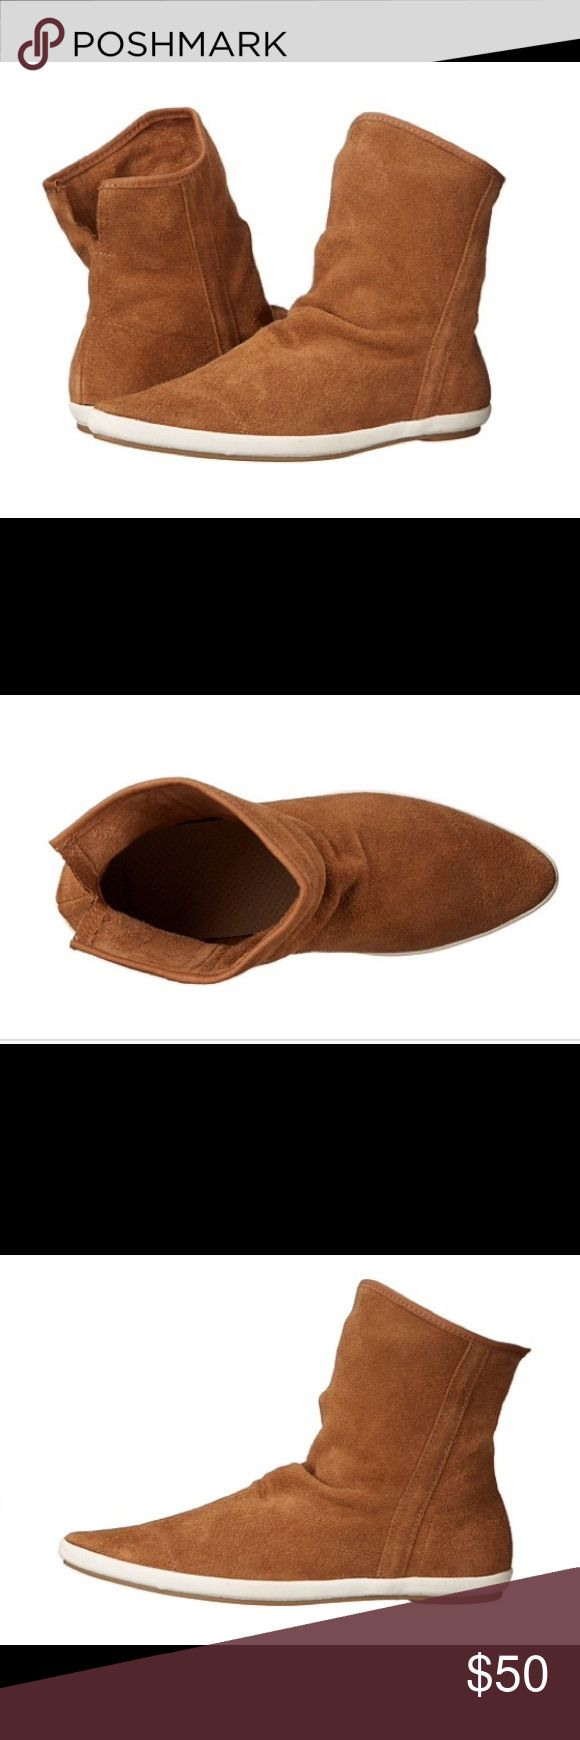 Sanuk Kat Sphynx Luxe Sanuk suede bootie in tobacco. Excellent condition. Sanuk Shoes Ankle Boots & Booties